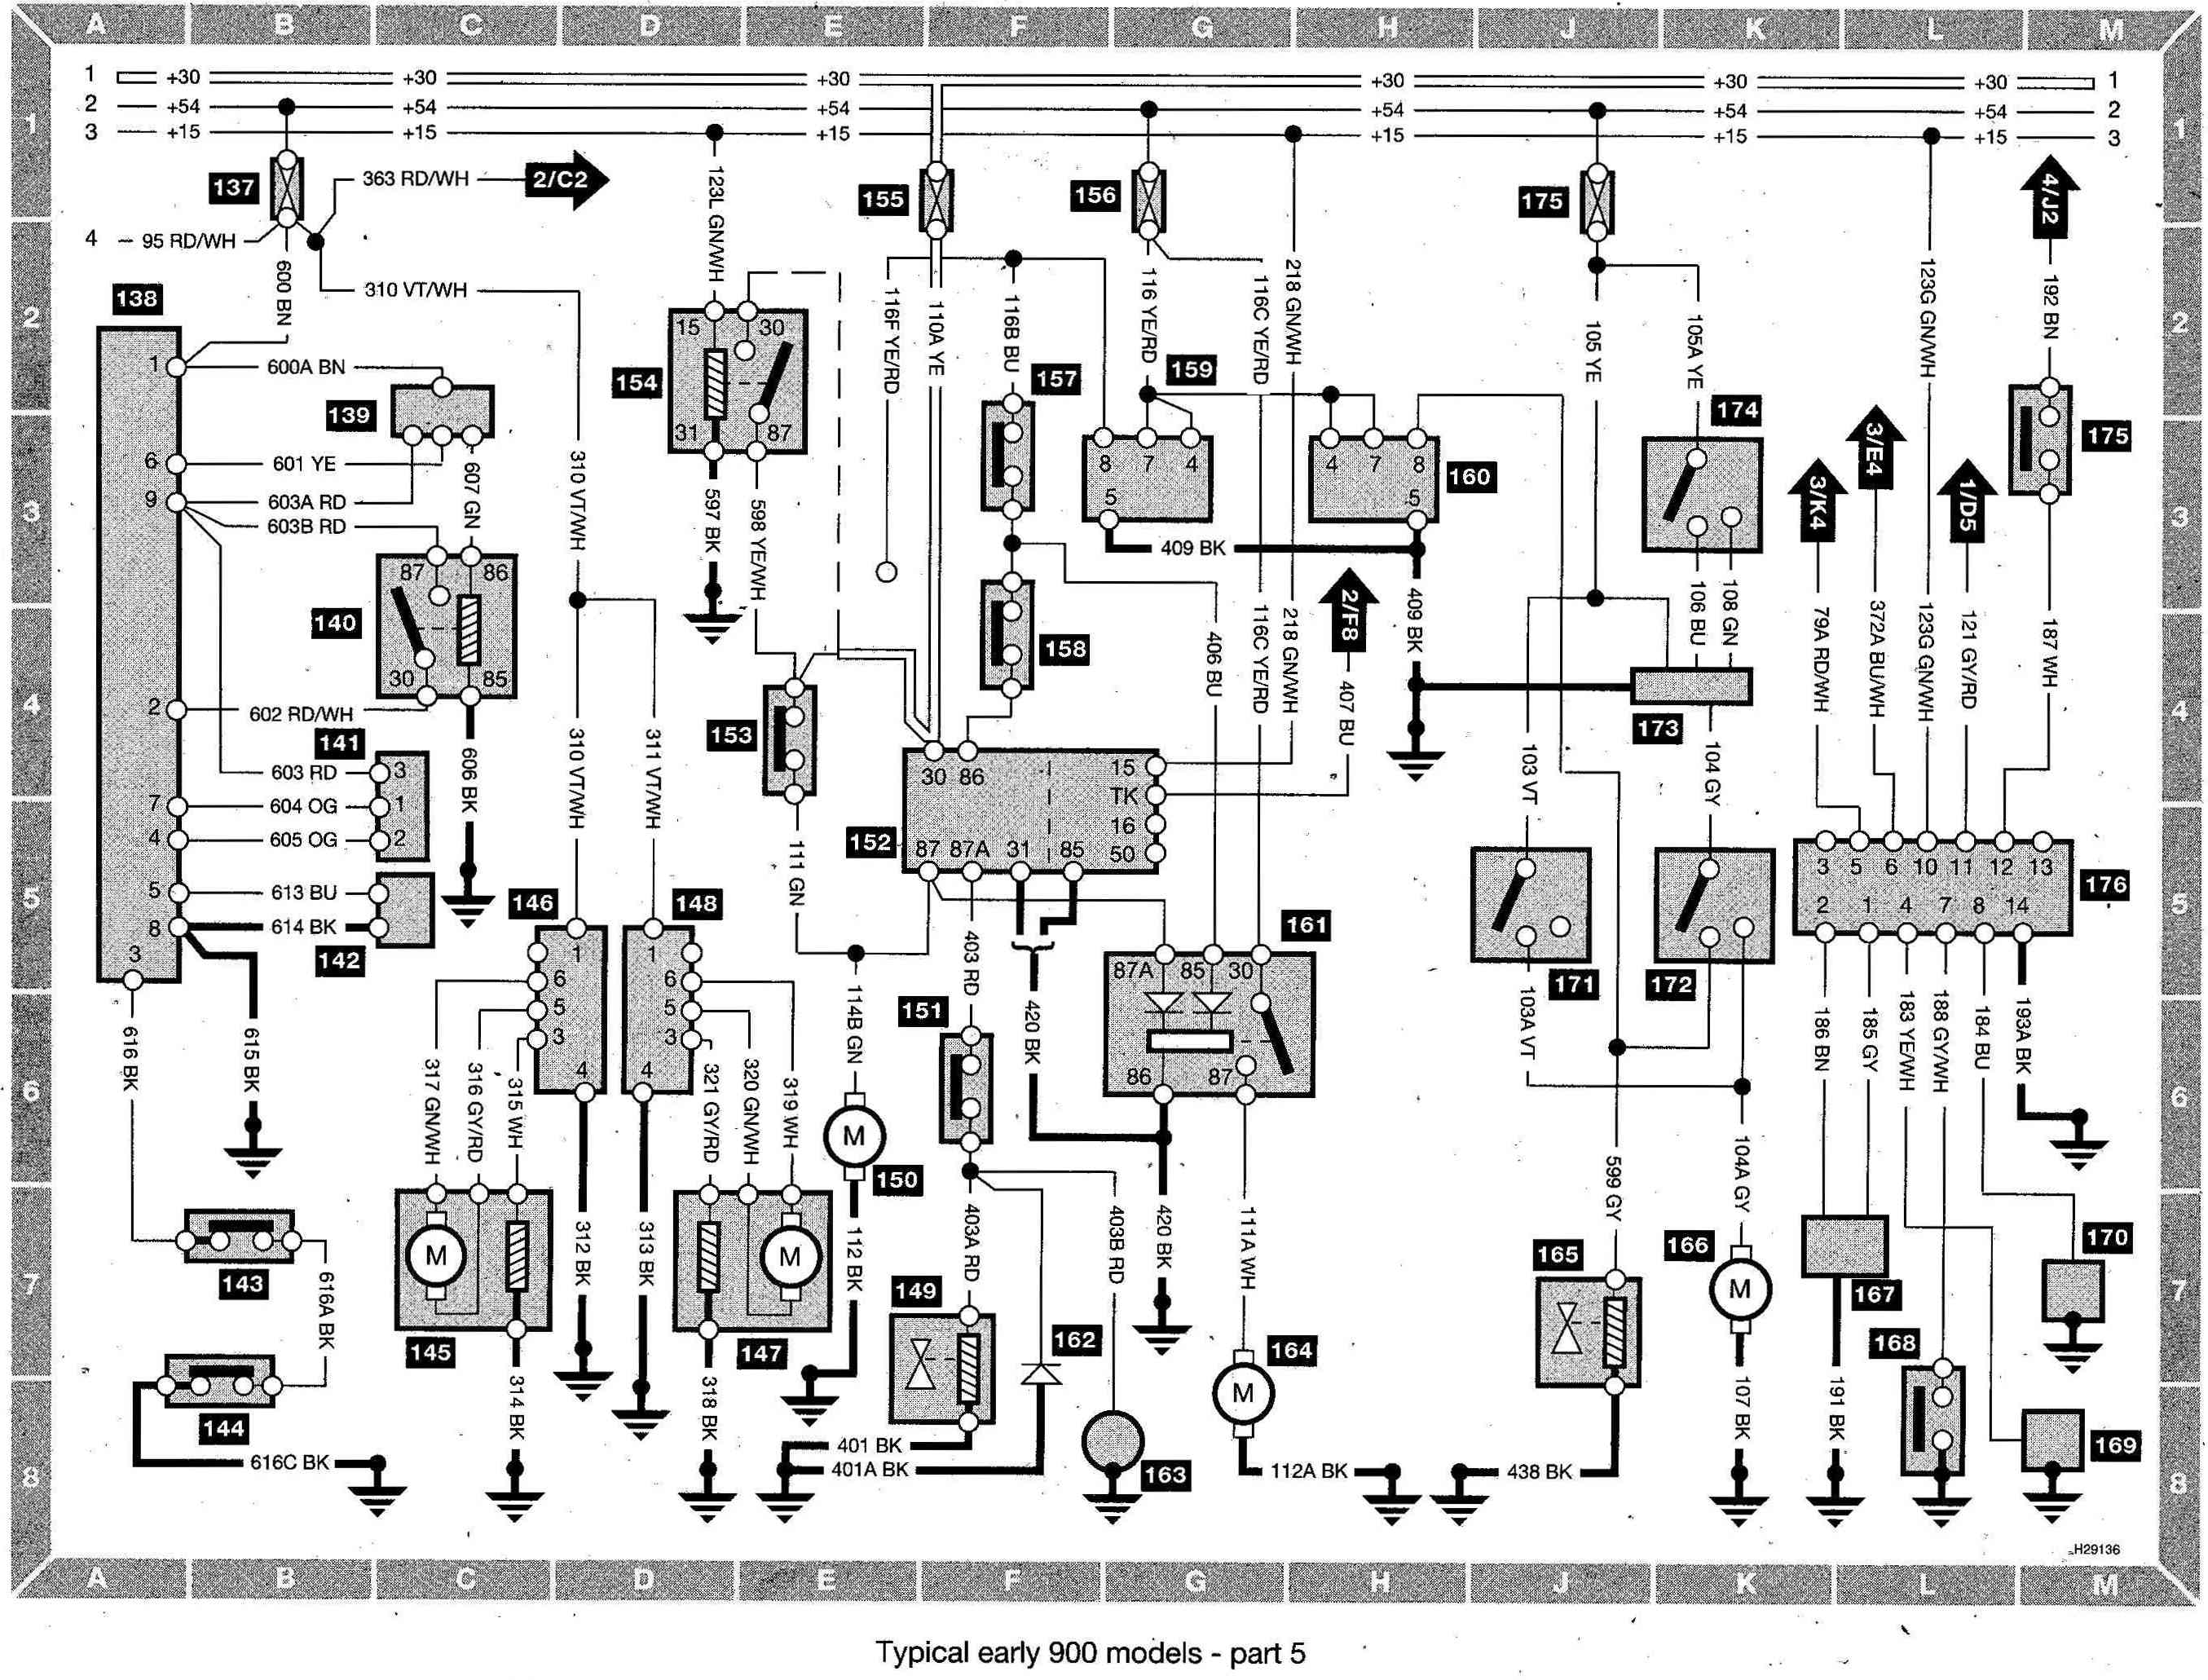 saab wiring harness saab free engine image for user manual